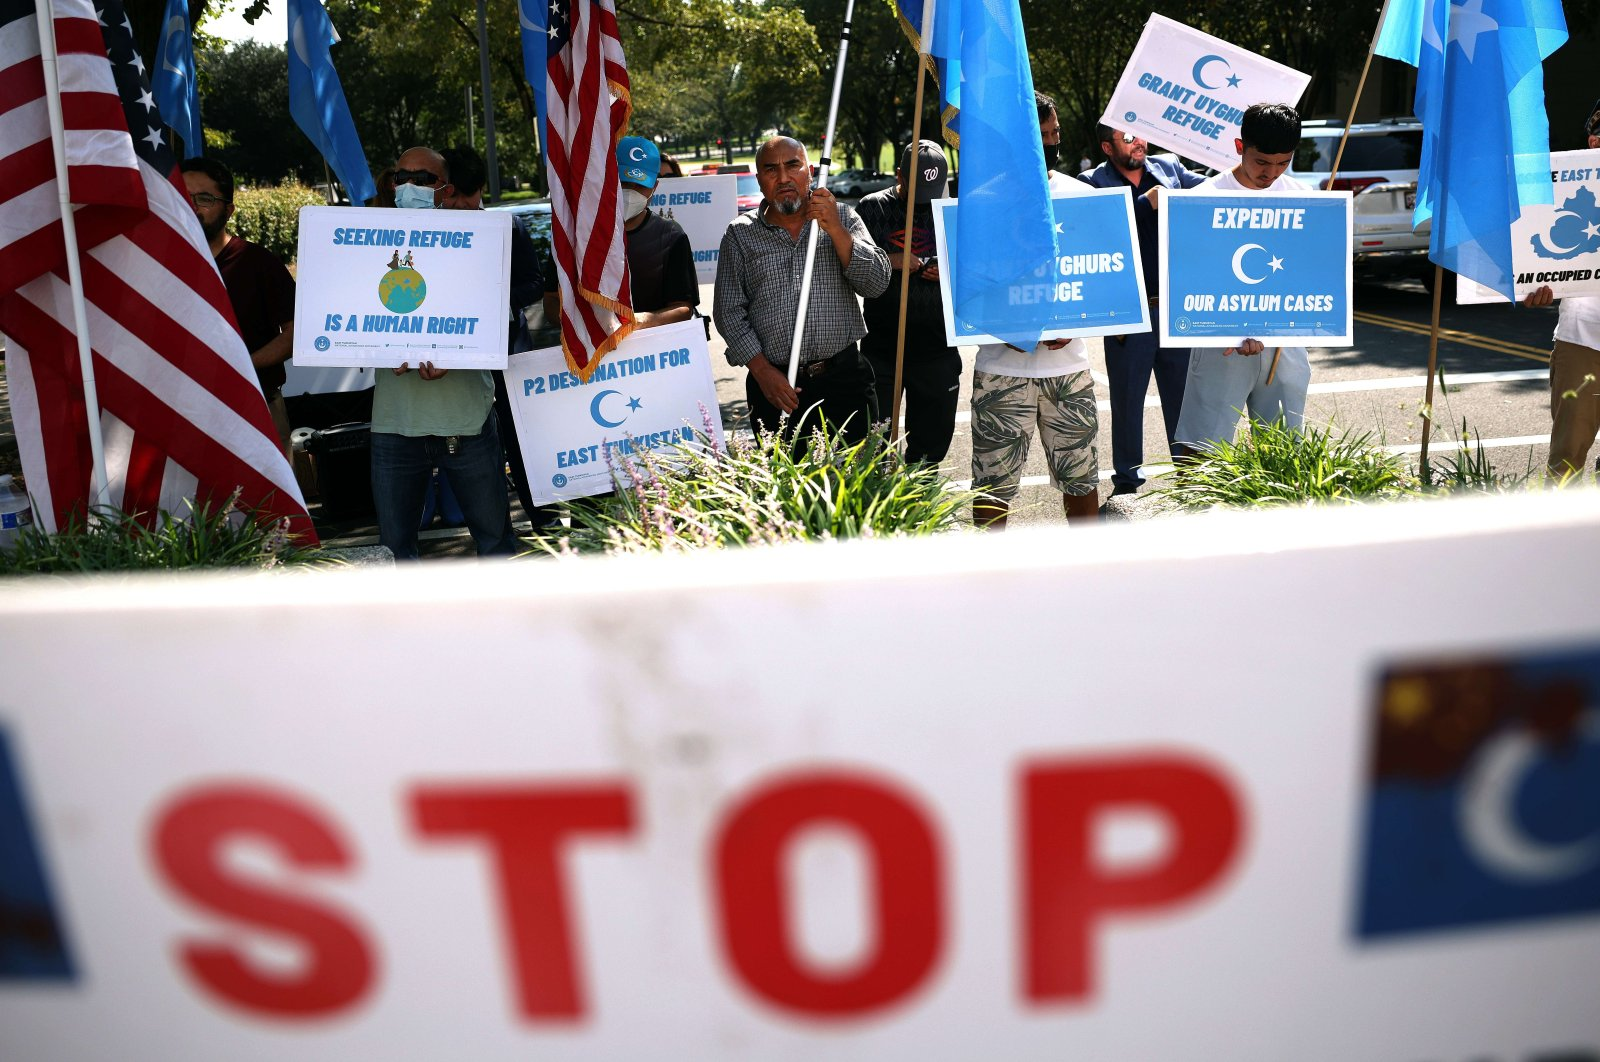 Signs are seen as members of the Uyghurs community, a mainly Muslim ethnic group originating from central and east Asia, rally against the Chinese government at the U.S. State Department, Washington, D.C., U.S., Sept. 15, 2021. (Getty Images/AFP)